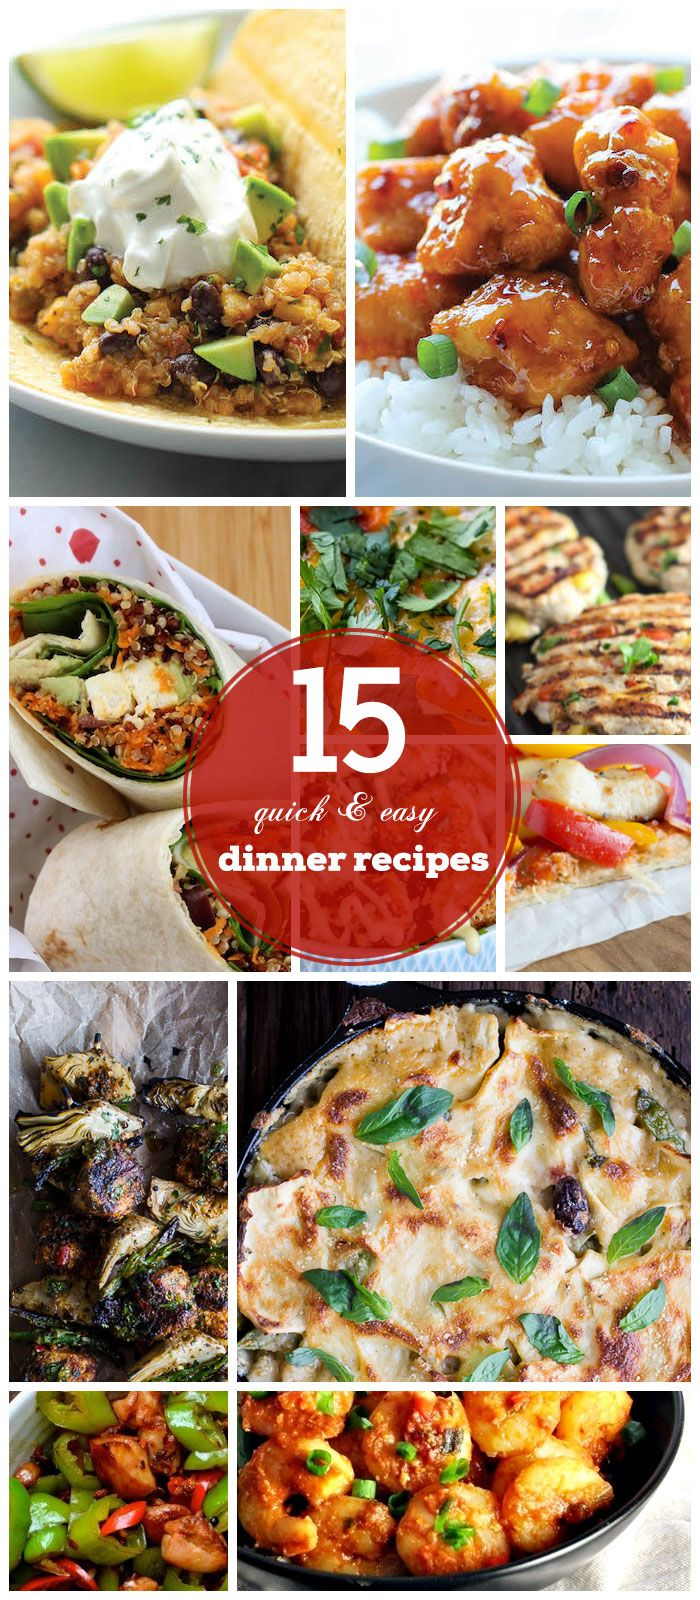 Click Pic for 22 Quick & Easy Dinner Recipes for Family | Easy Healthy Dinners on a Budget